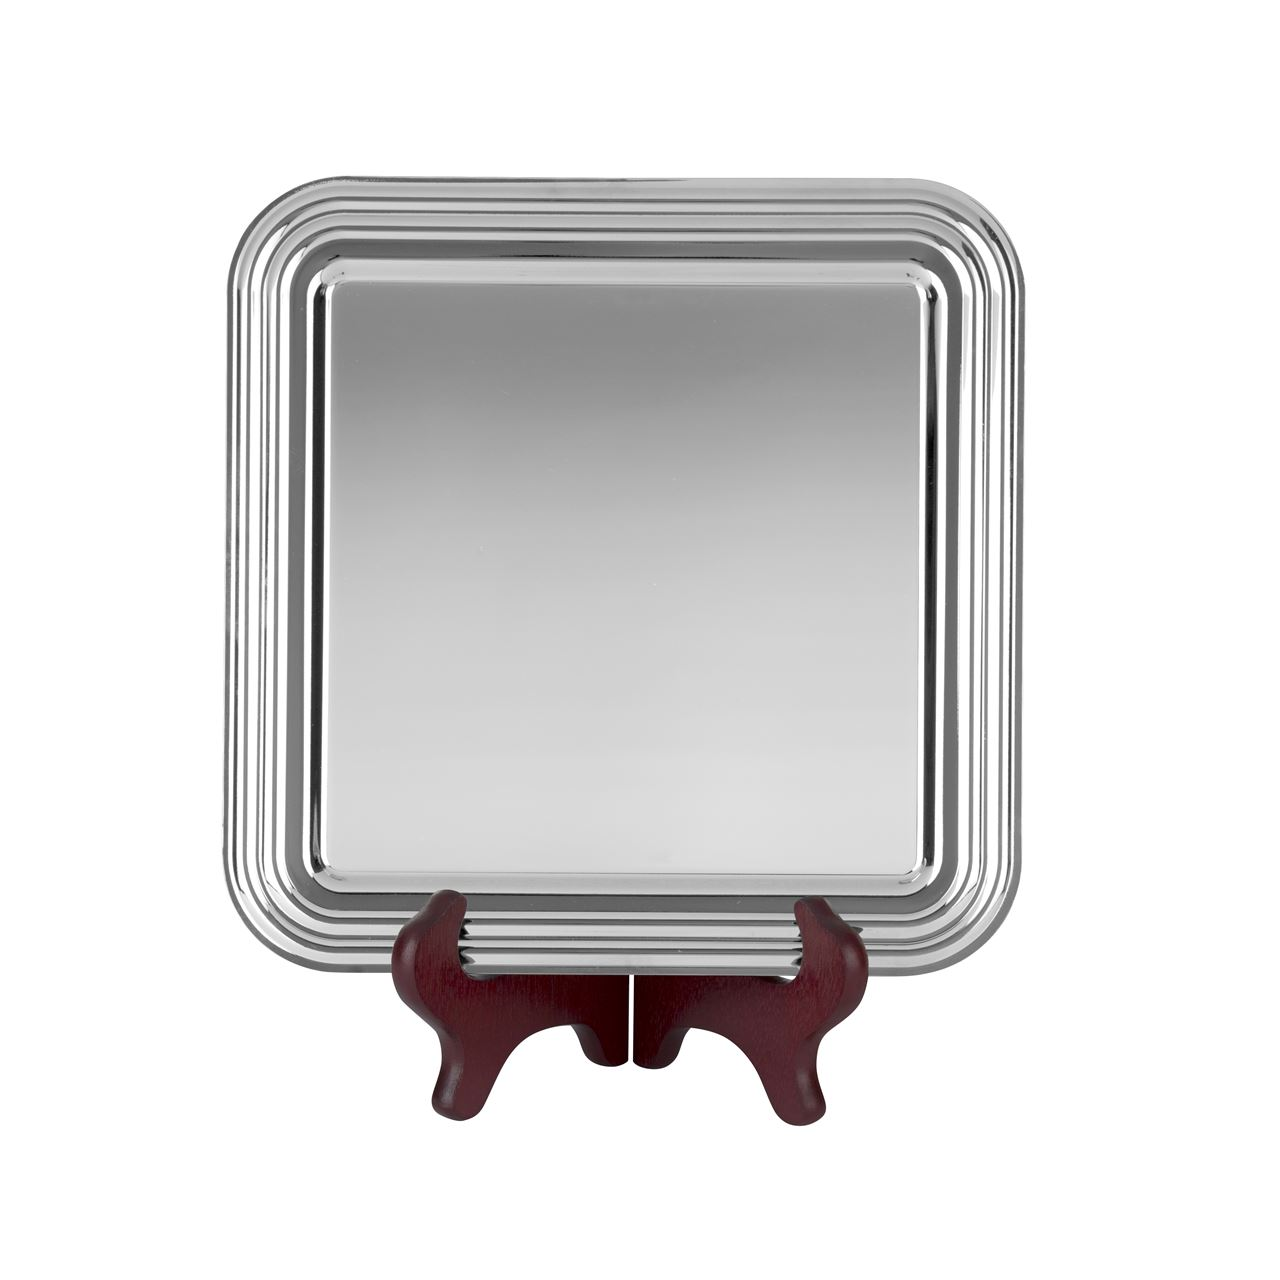 Heavy Gauge Nickel Plated Linear Square Tray - S9